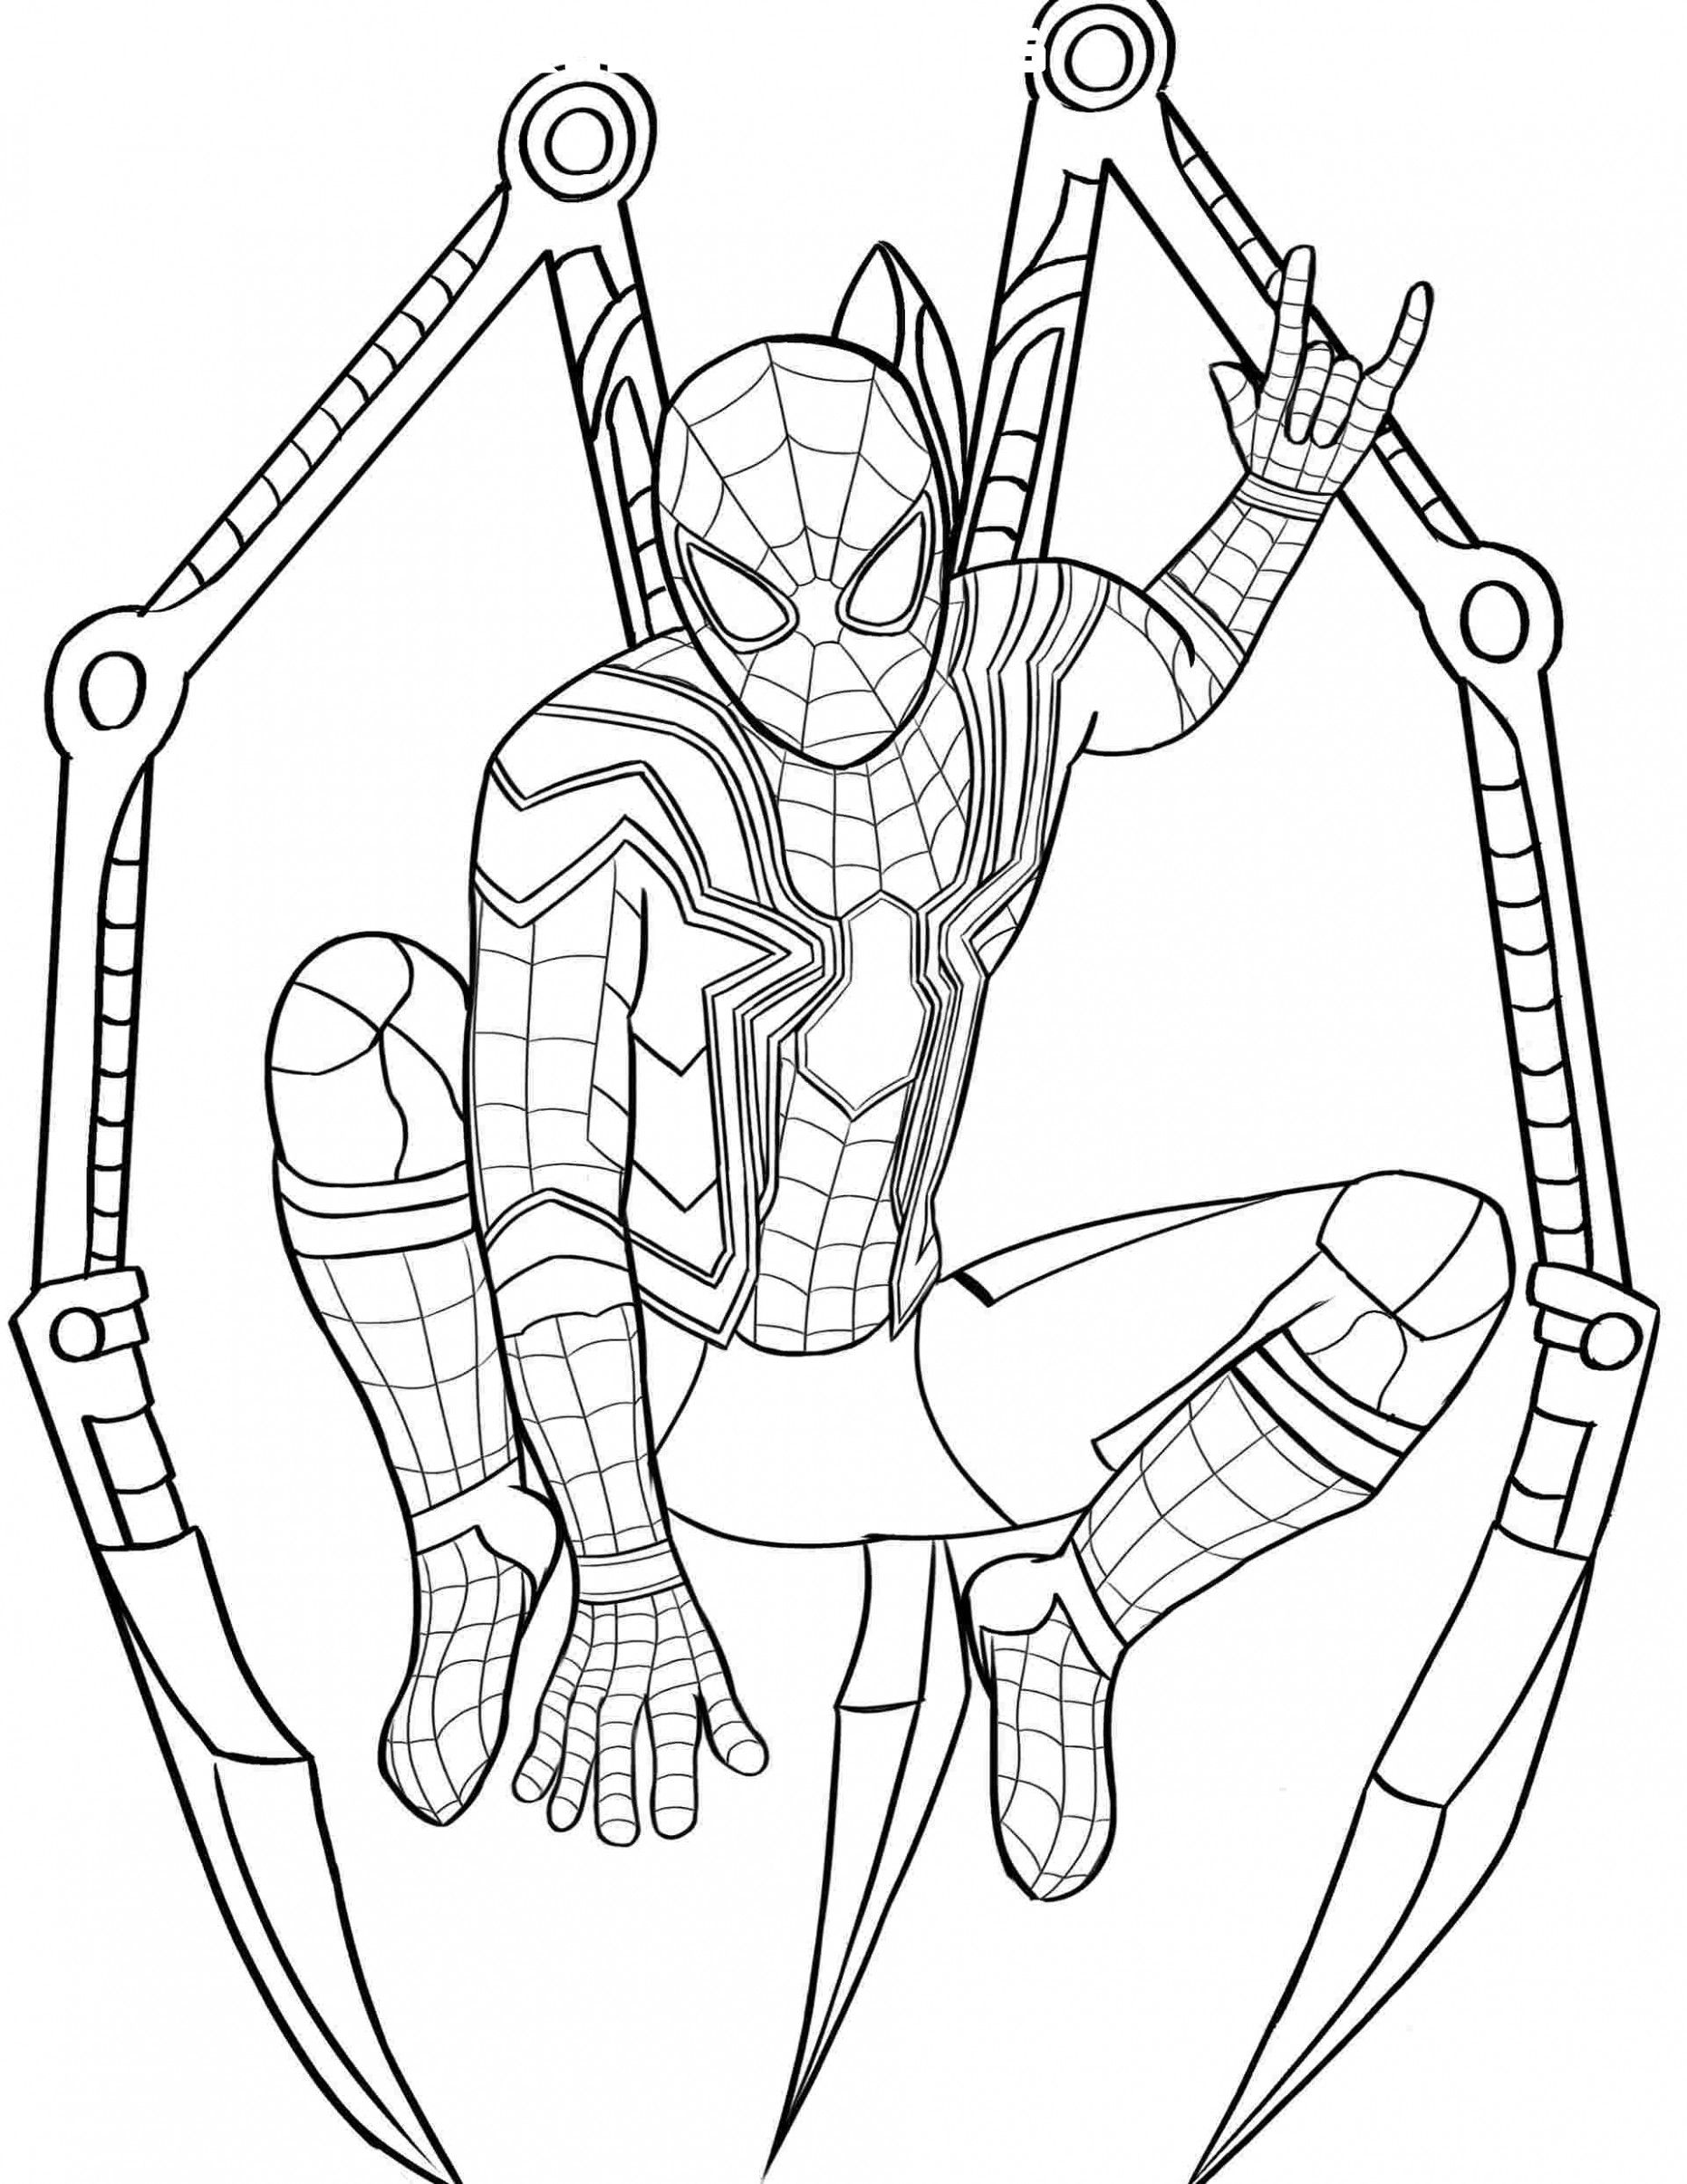 9 Spiderman Colouring Pages Spider Coloring Page Avengers Coloring Superhero Coloring Pages